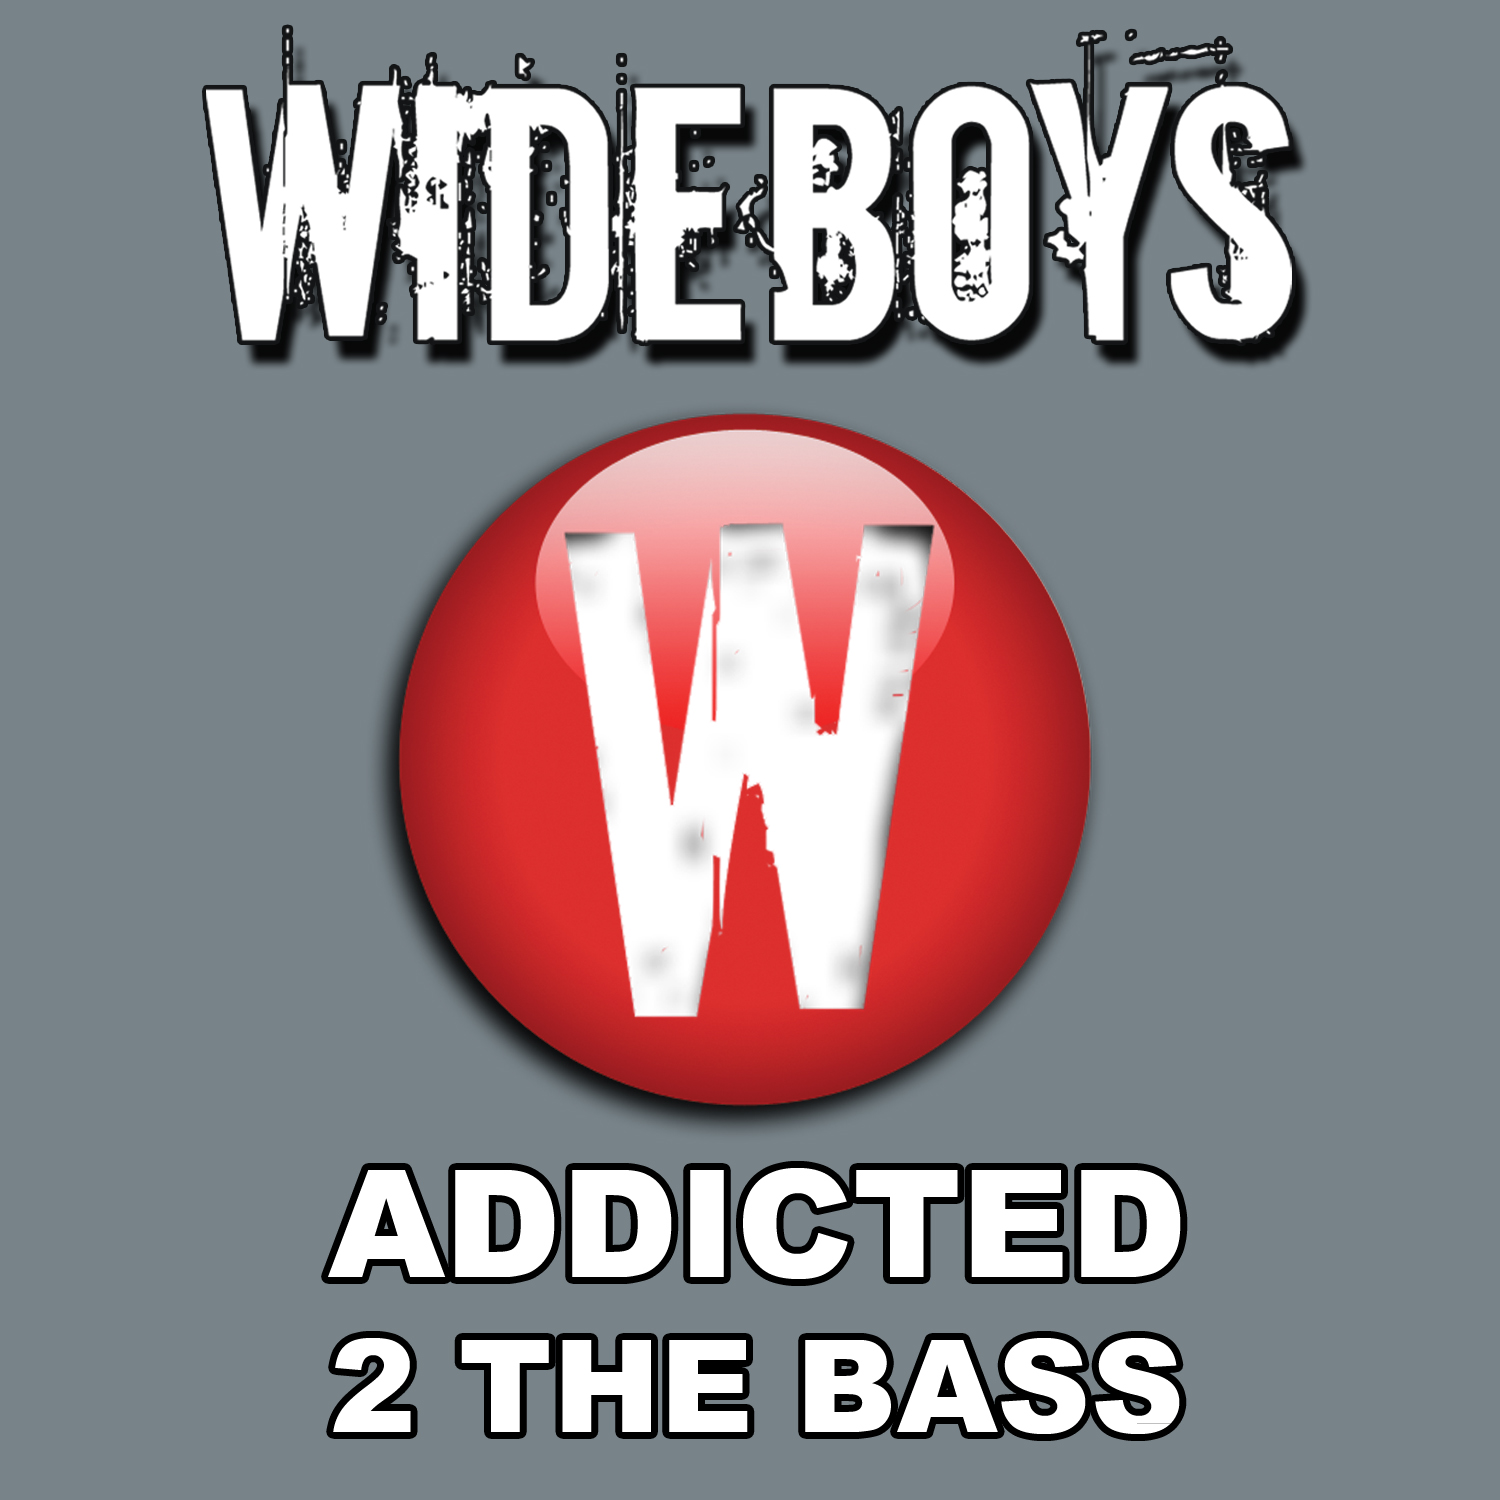 Wideboys - Addicted 2 The Bass (Stadium's House Mix)